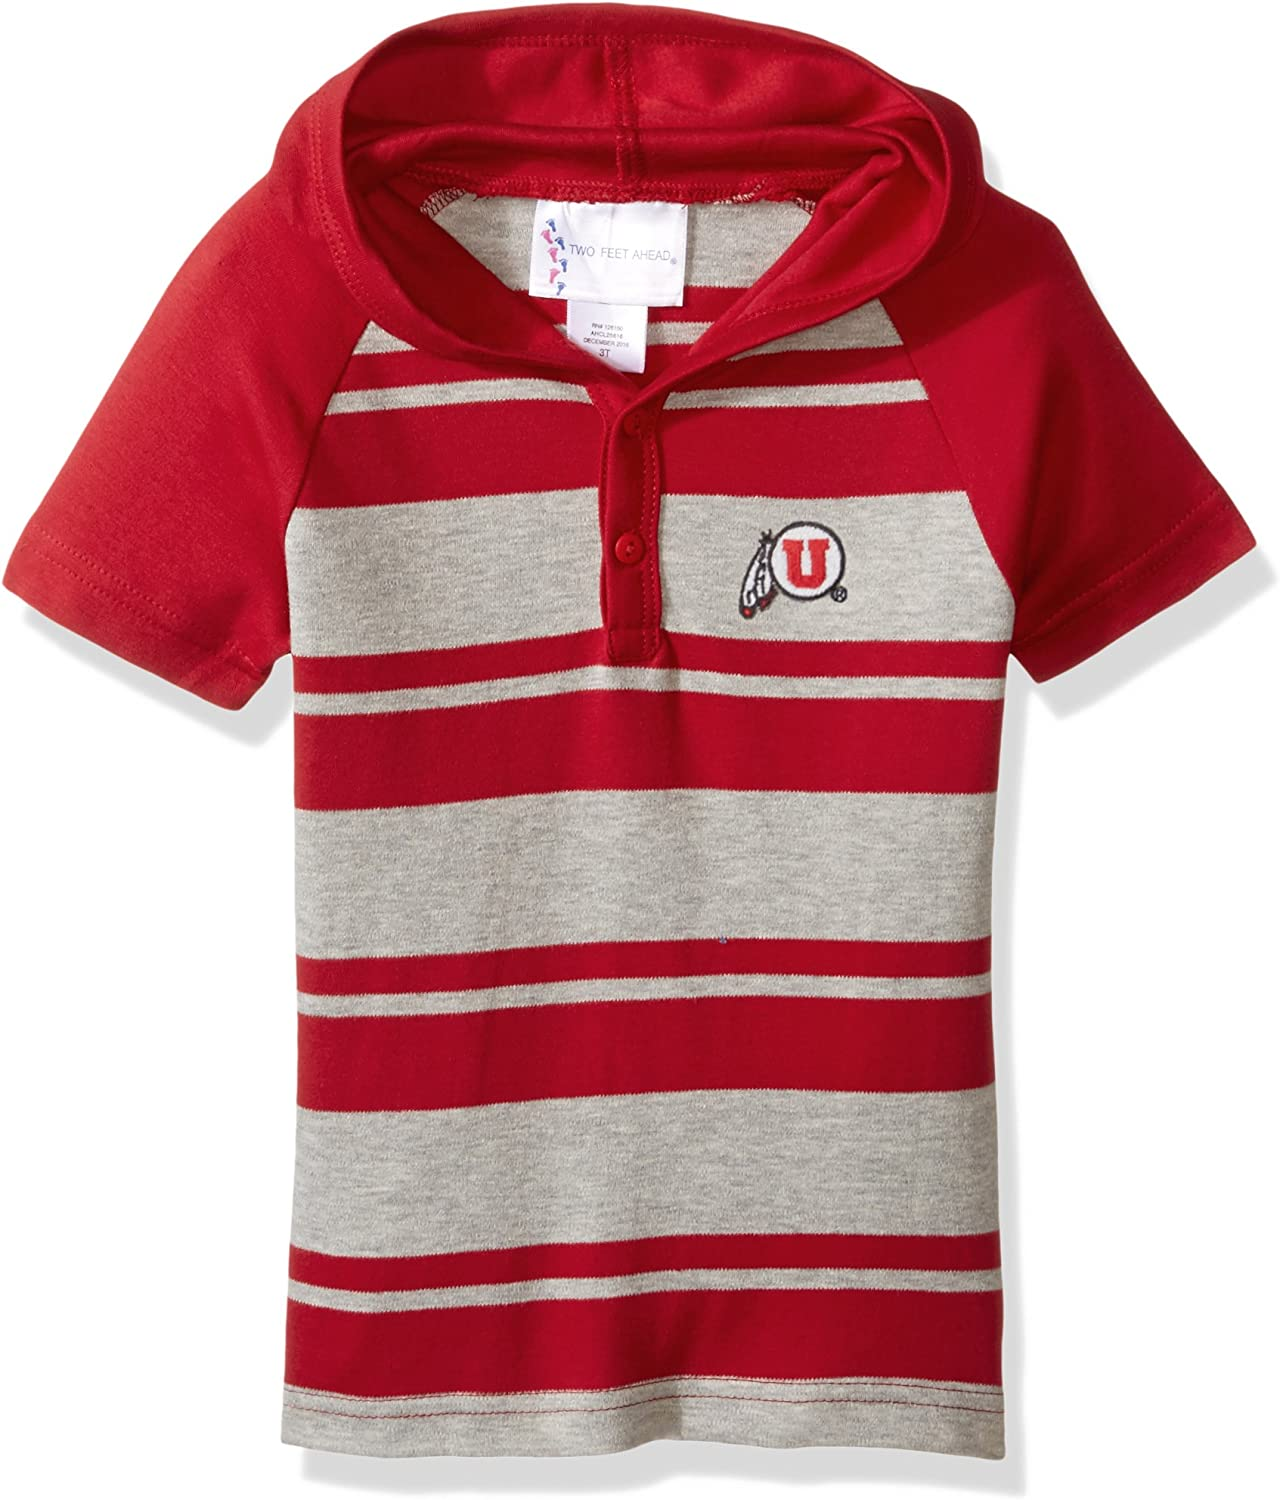 Two Feet Ahead NCAA Utah Utes Toddler Boys Rugby Short Sleeve Hooded Shirt, Size 3, Red Heather